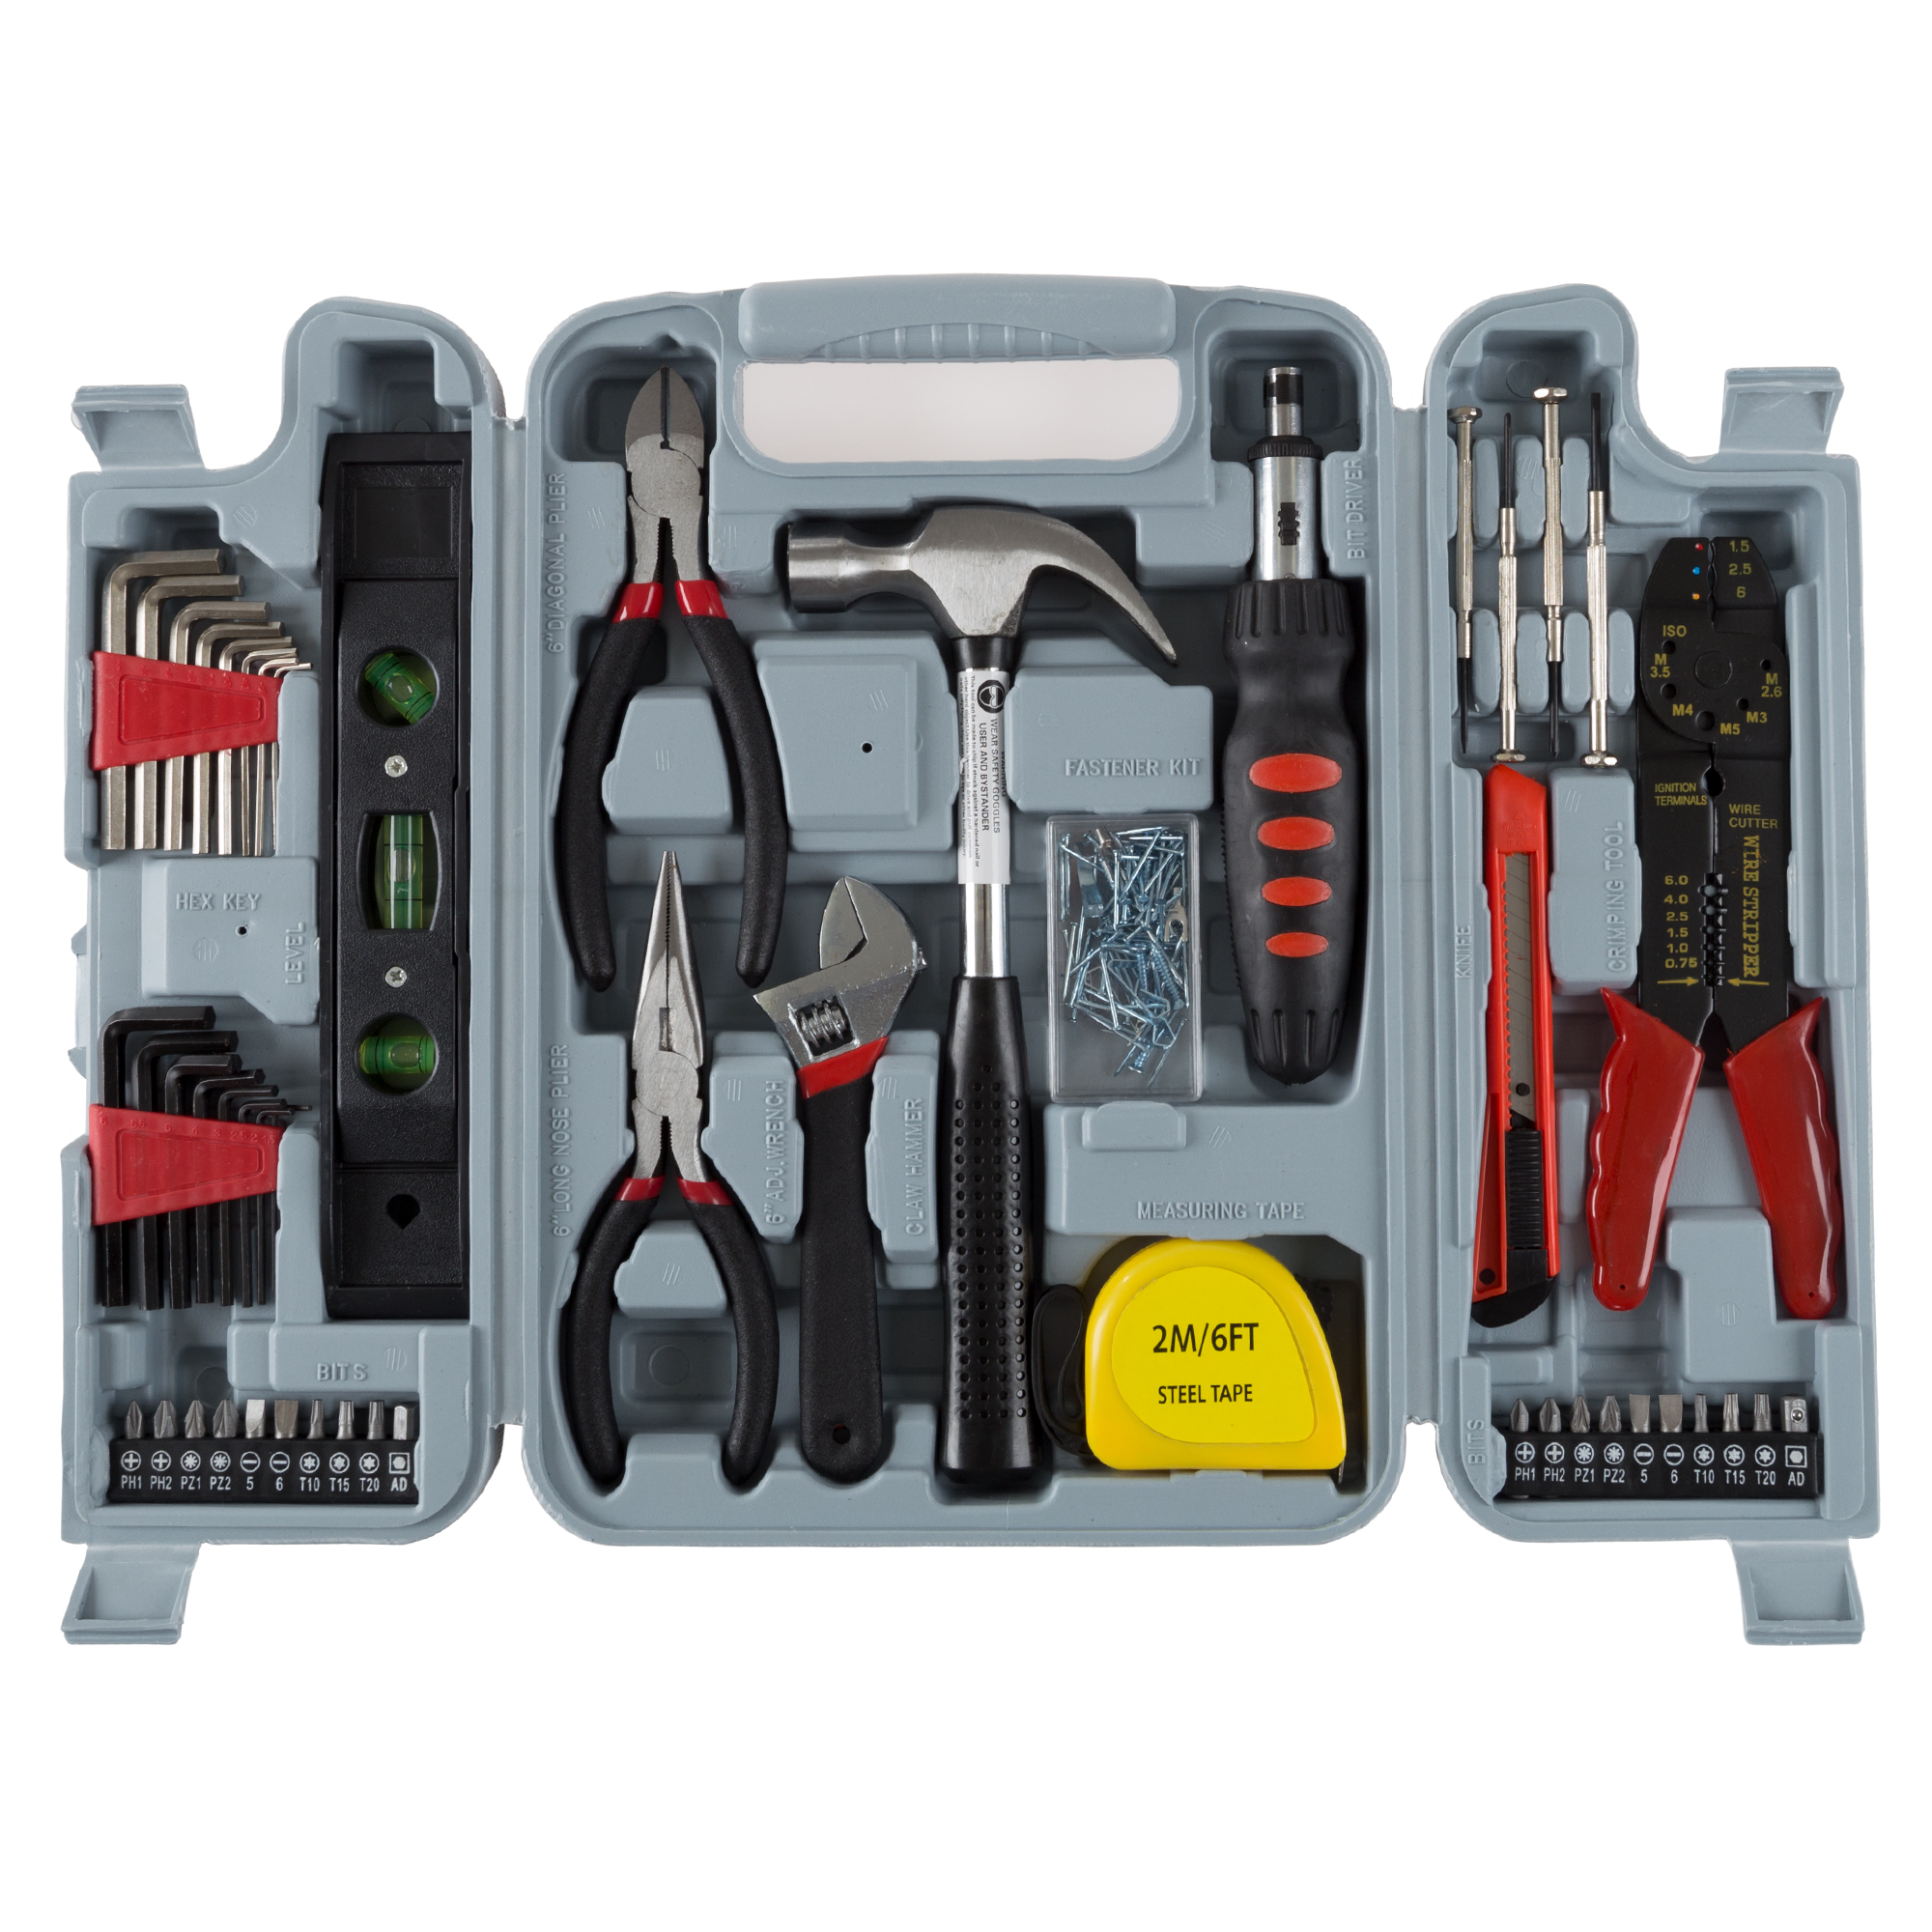 Household Hand Tools, 130 Piece Tool Set by Stalwart, Set Includes Hammer, Wrench Set,... by Trademark Global LLC